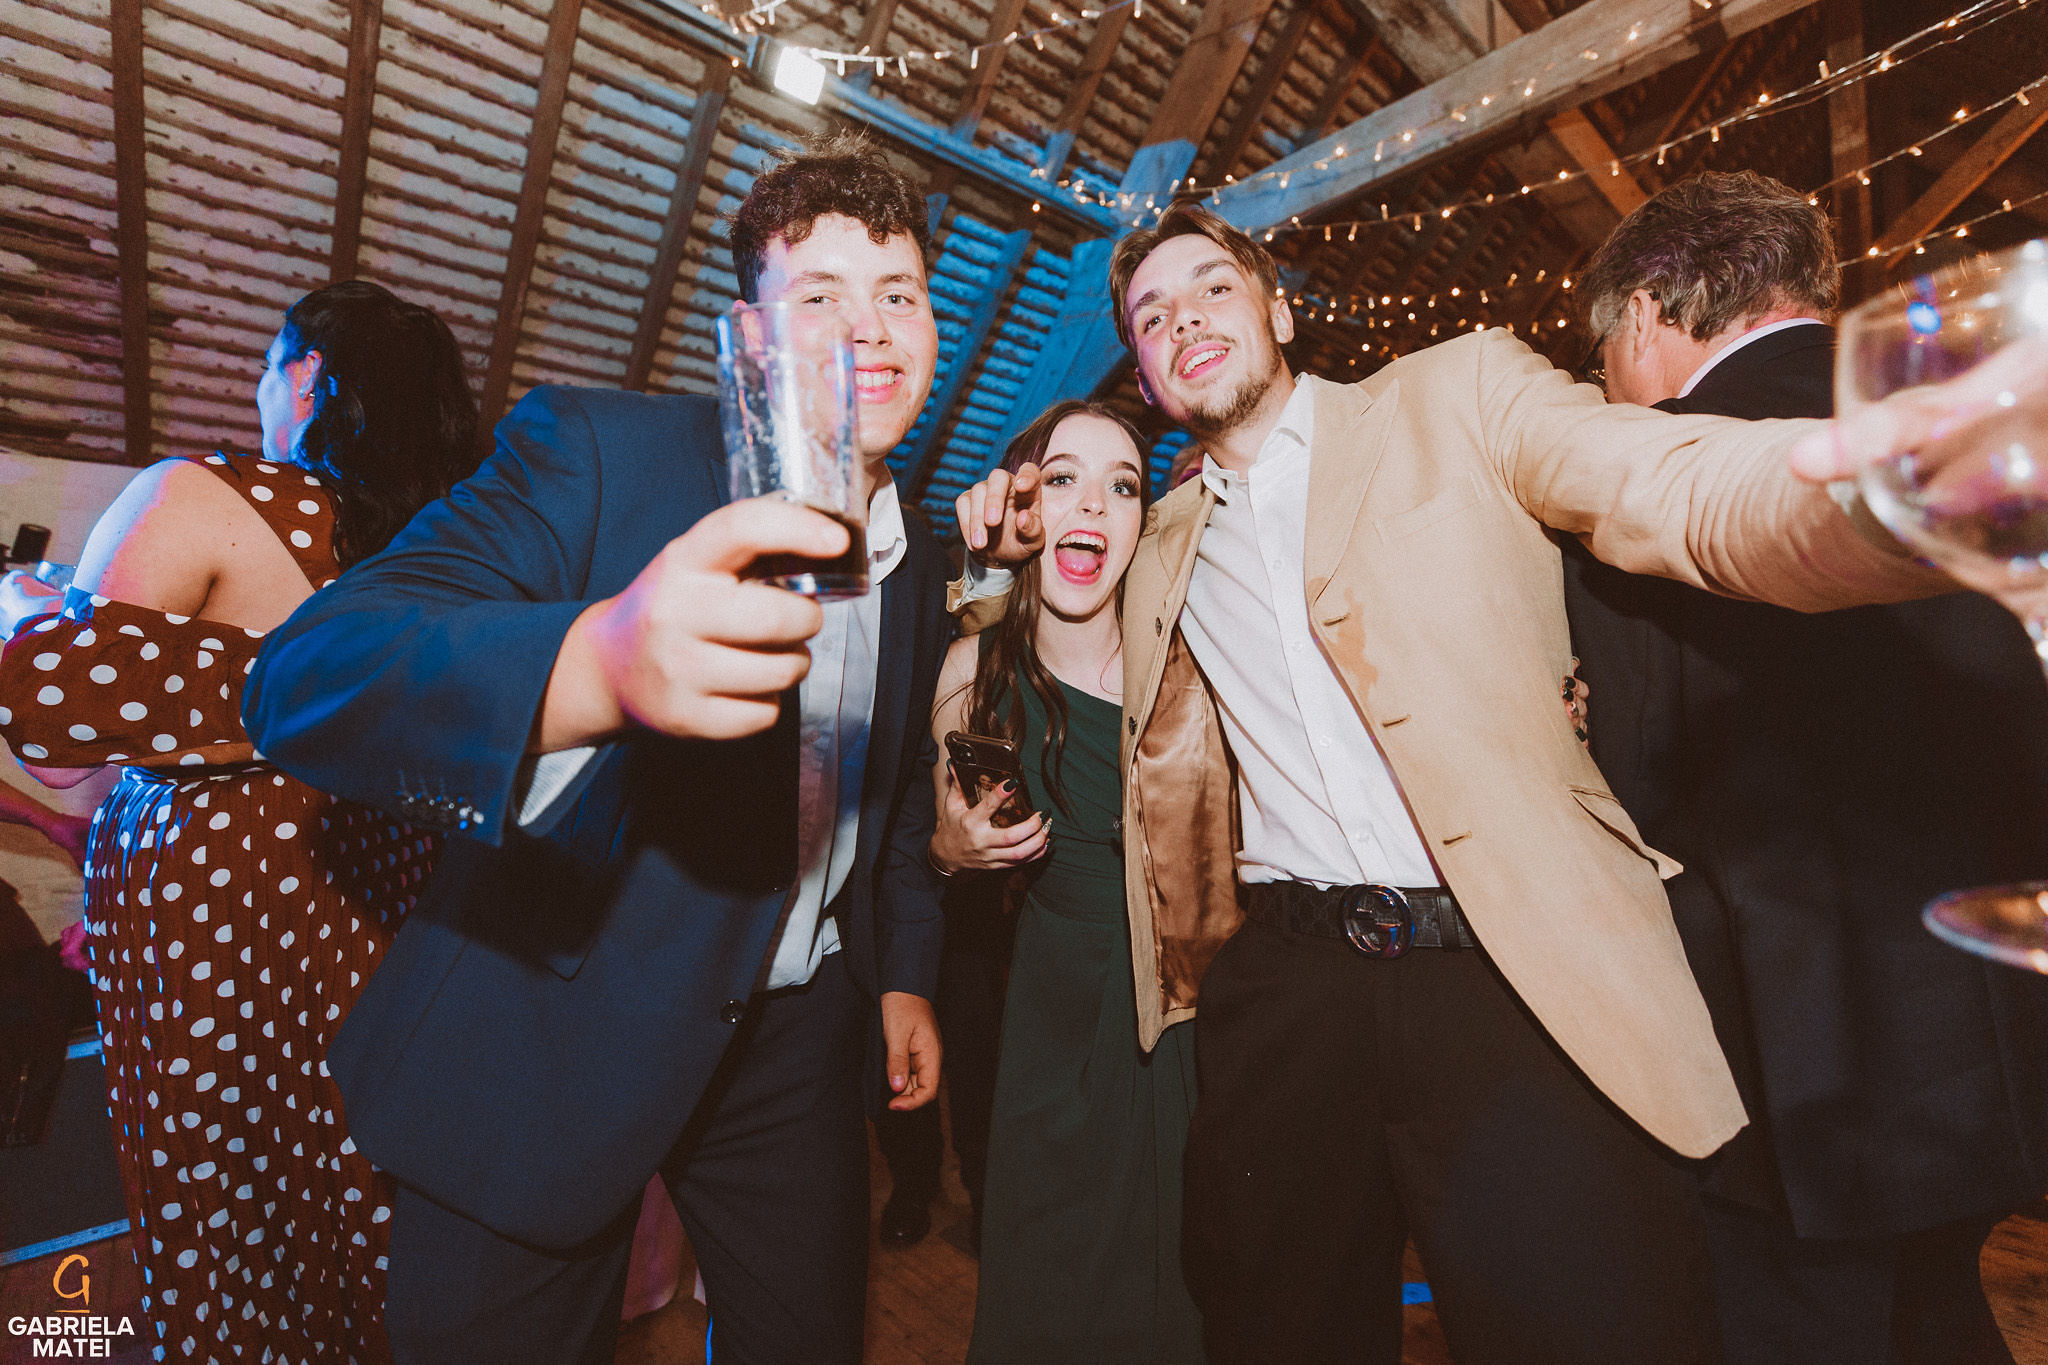 wedding guests dancing at South Stoke Barn wedding venue in Arundel by gabriela matei sussex photographer